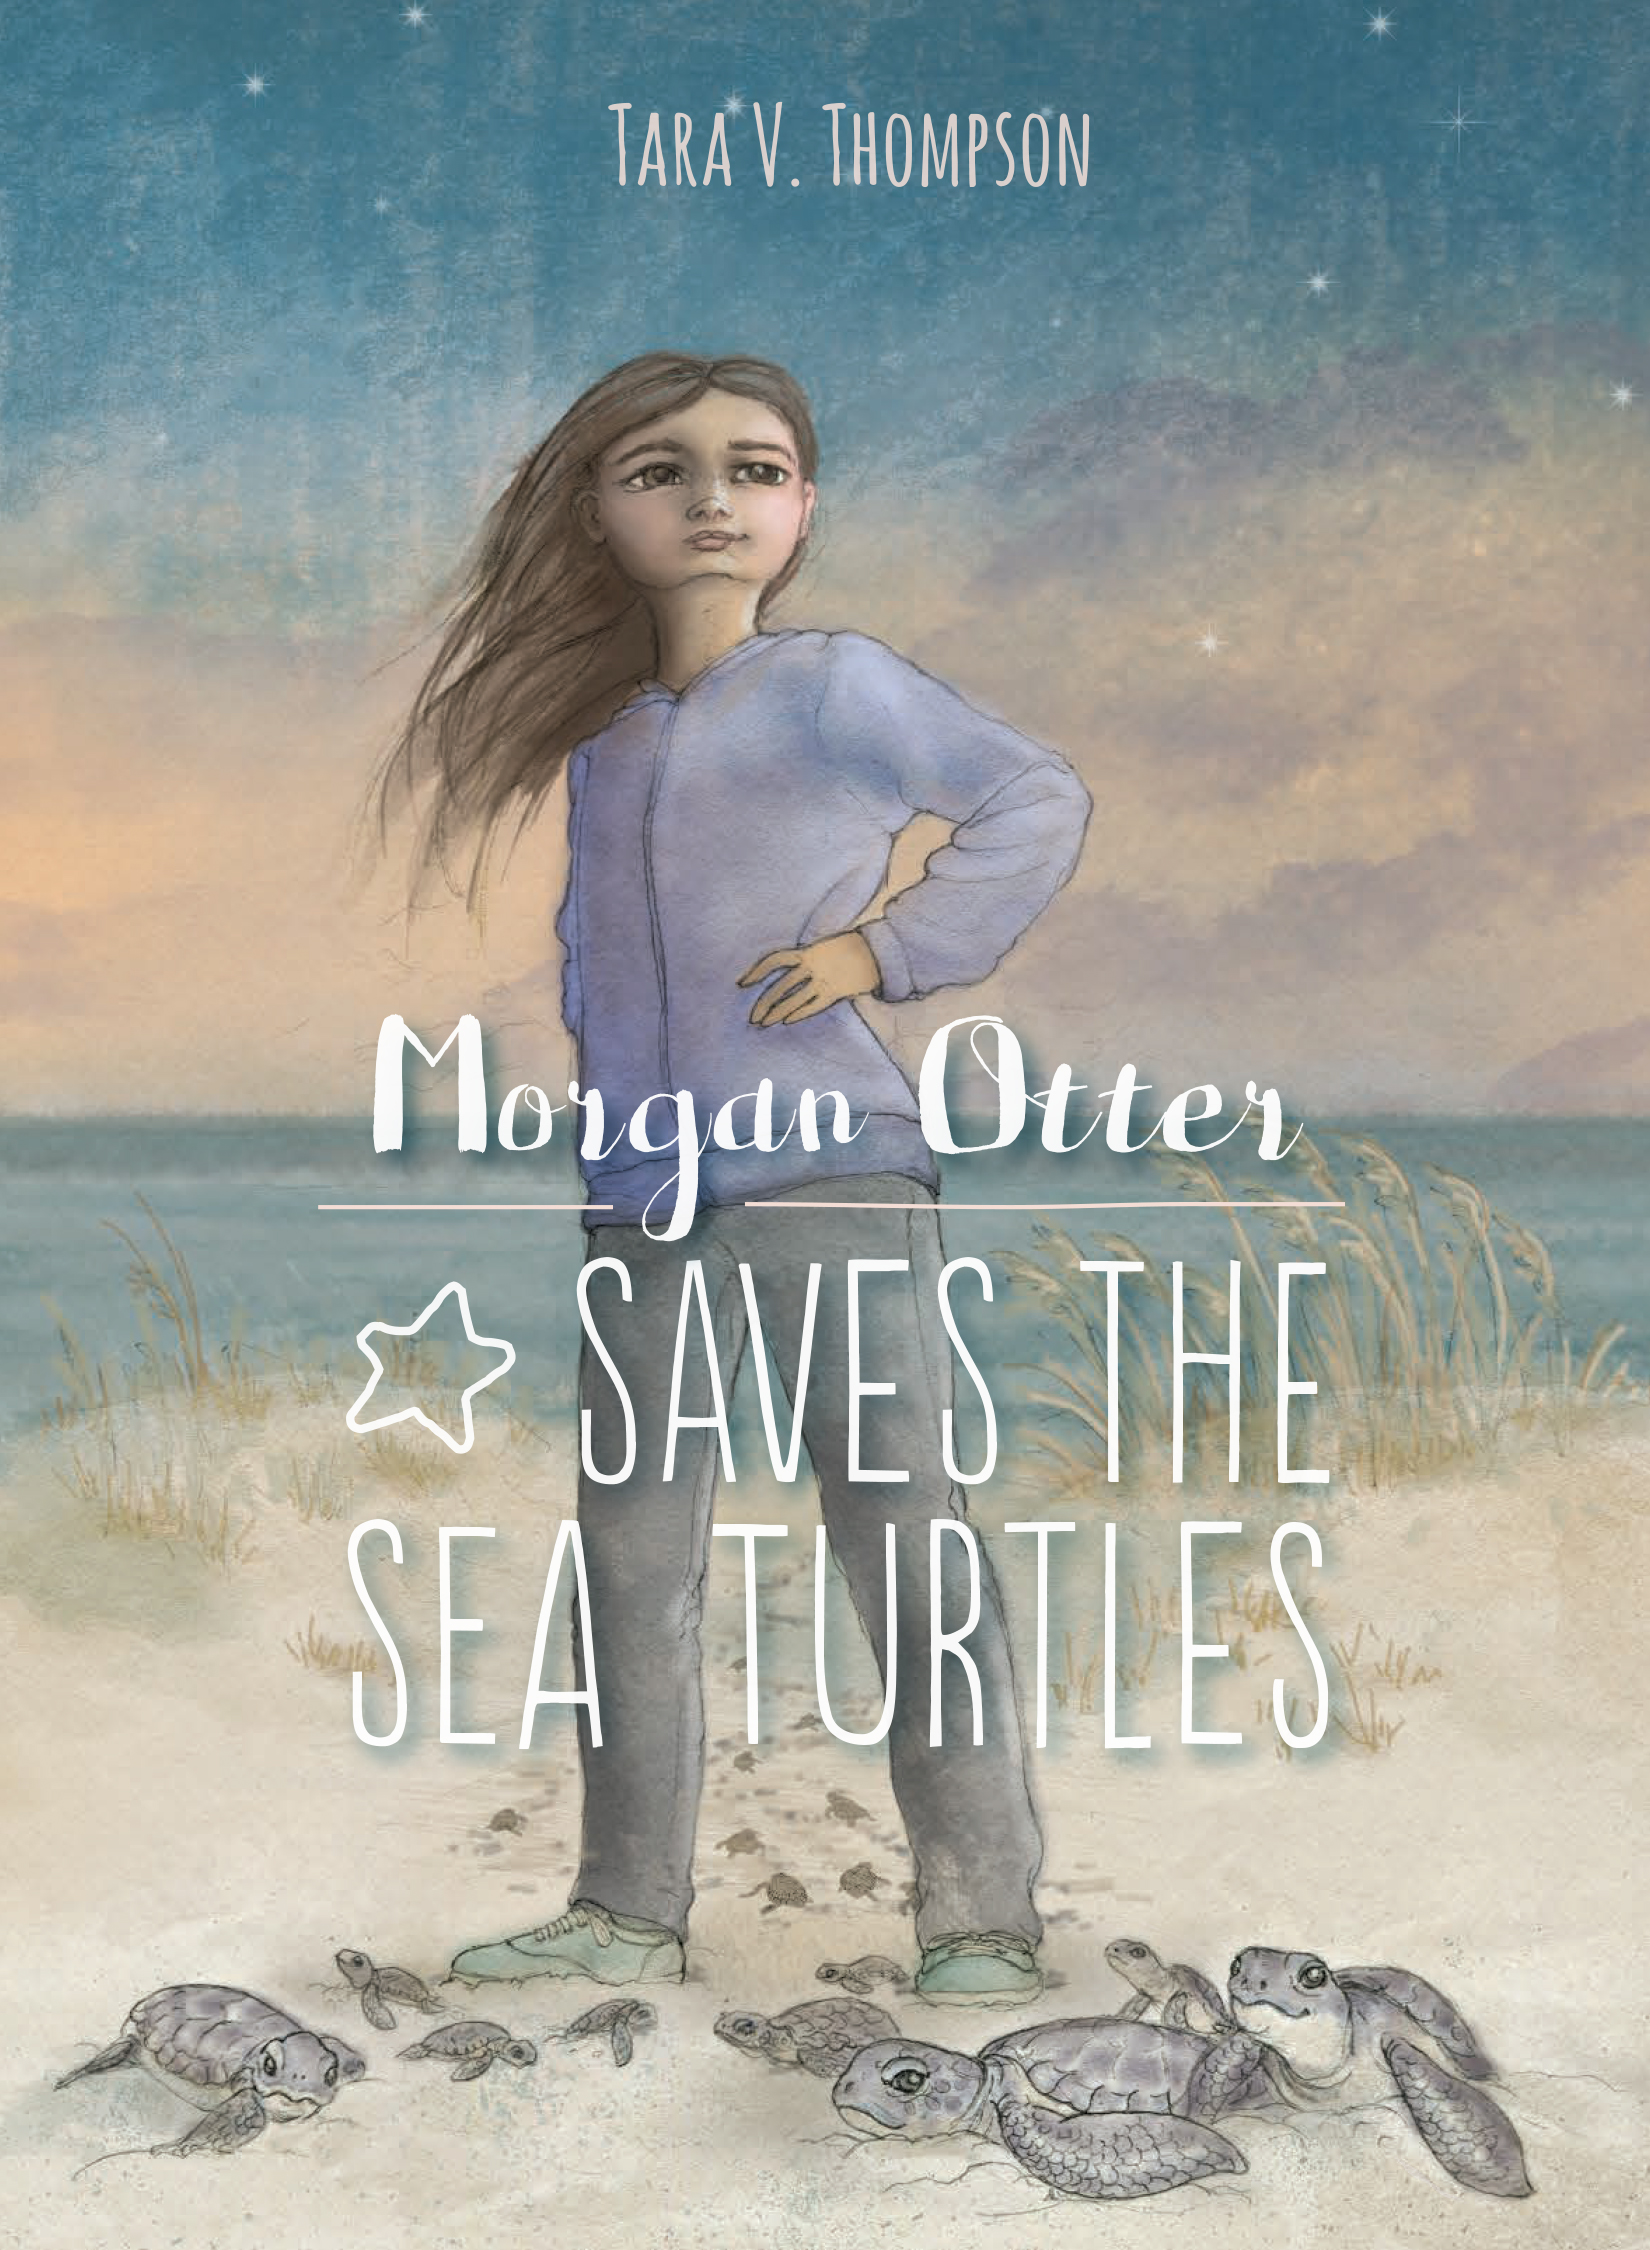 Morgan Otter Saves the Sea Turtles